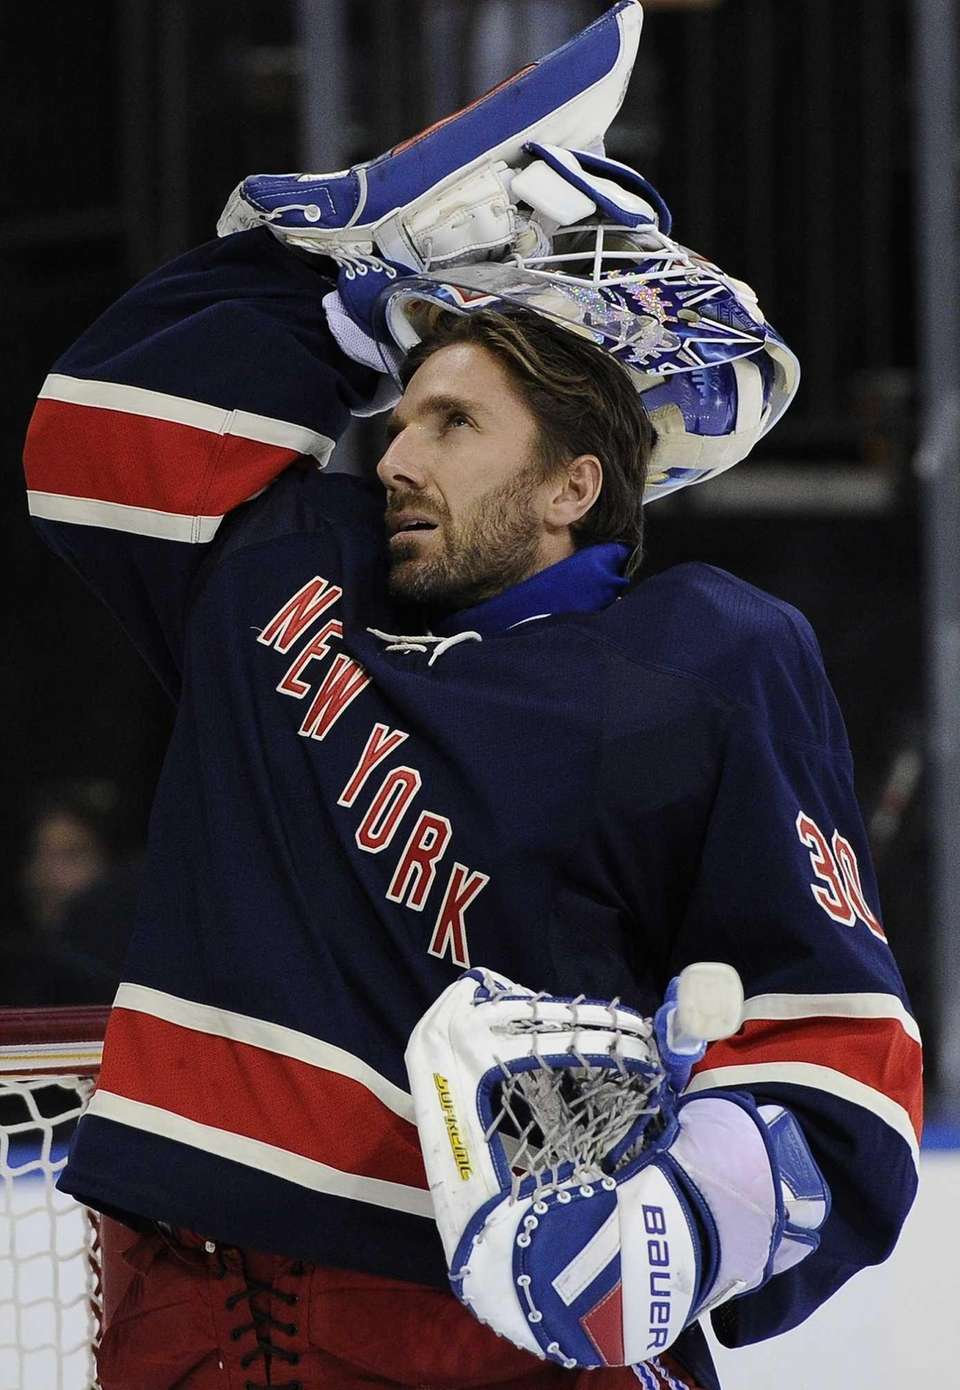 Rangers goalie Henrik Lundqvist put on his mask